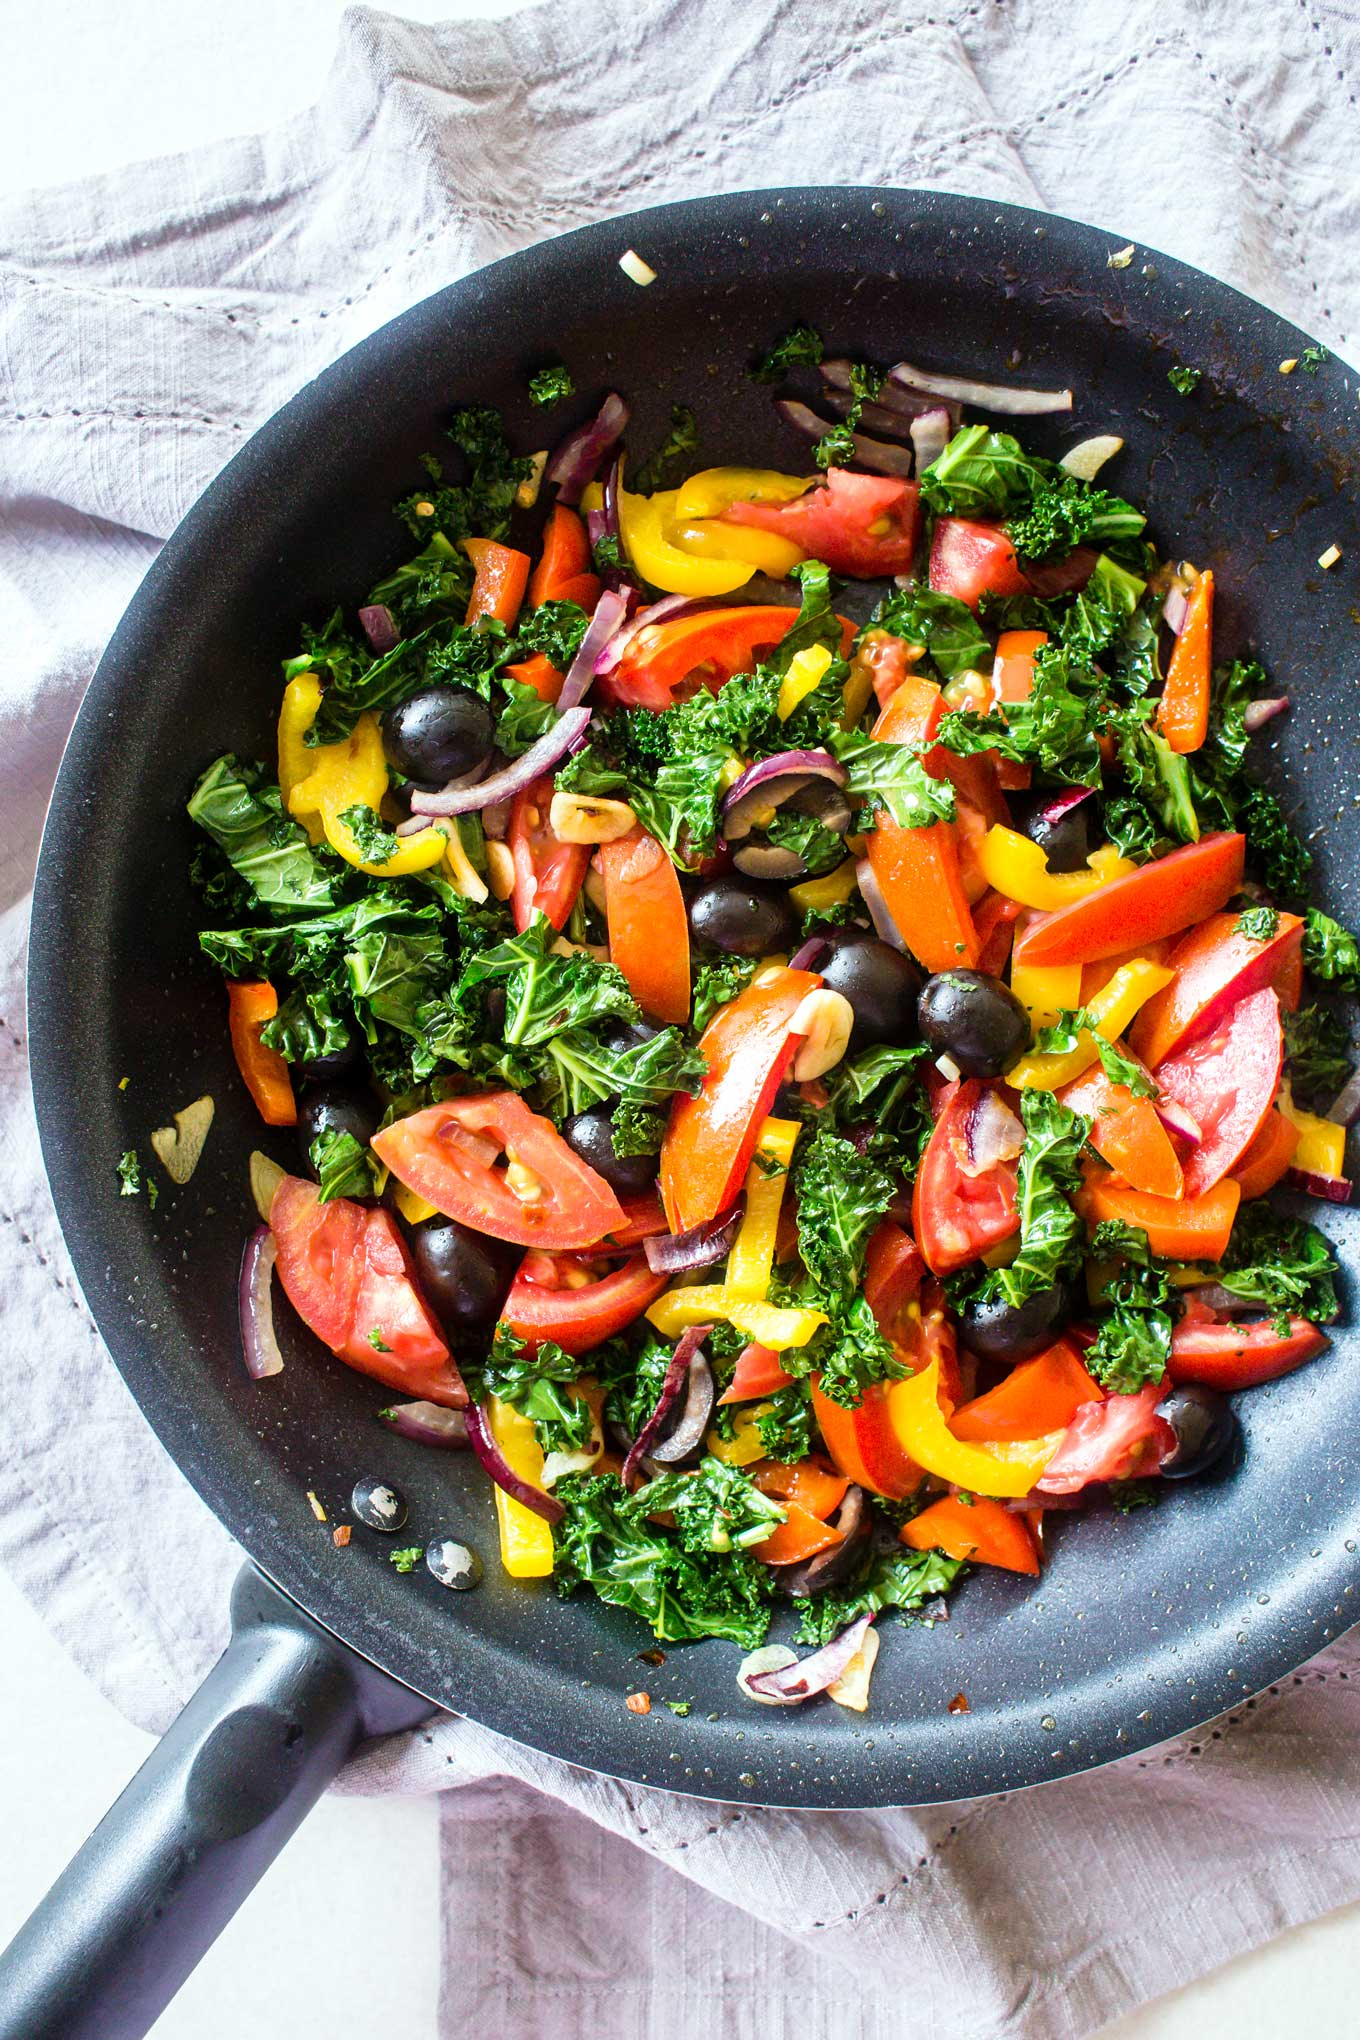 Bell Peppers, Olives, Tomatoes, Red Onions, Kale and Garlic in a pan